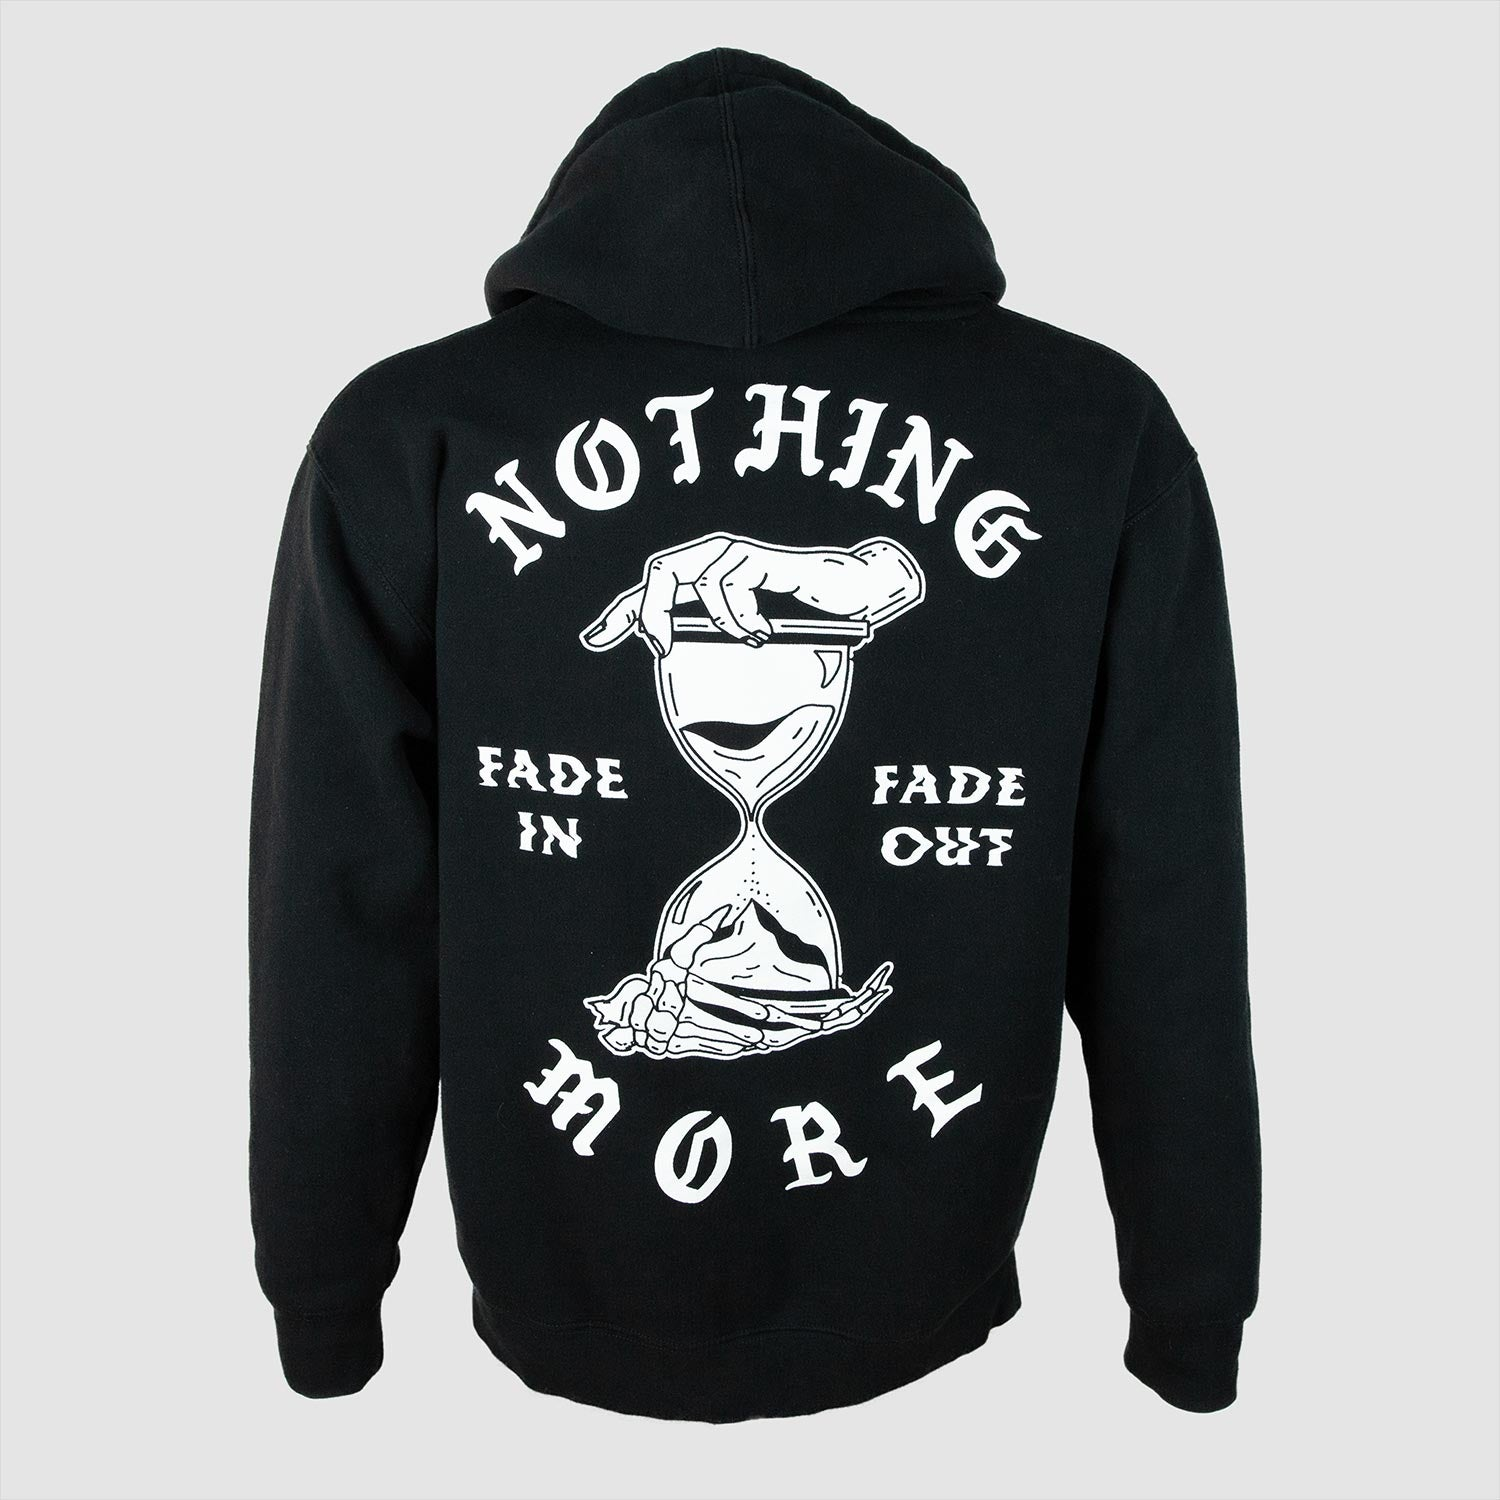 FADE IN FADE OUT PULLOVER HOODIE